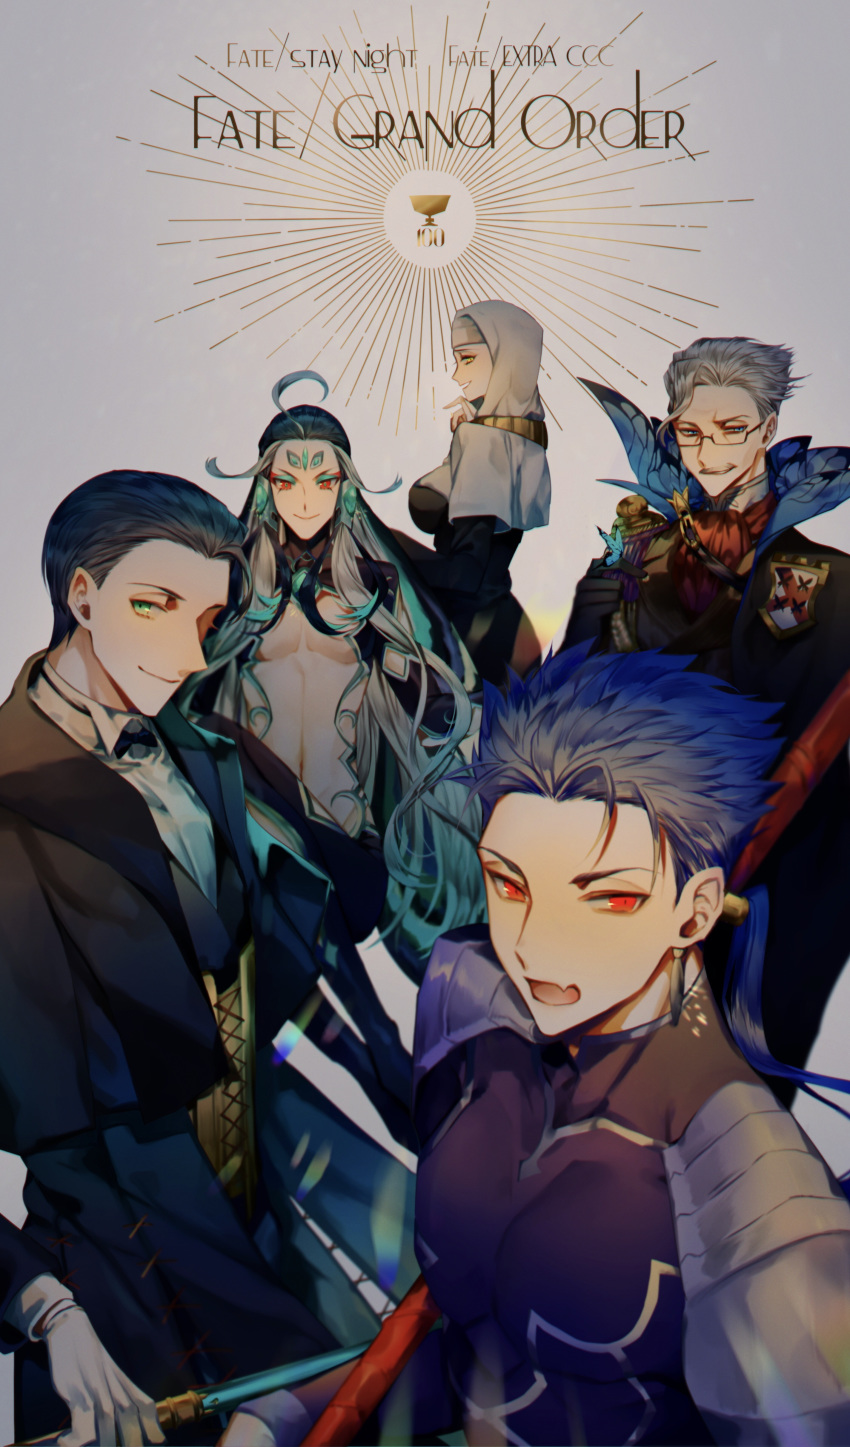 1girl 4boys absurdres ahoge albino_(a1b1n0623) bangs black_hair blue_eyes blue_hair blush breasts bug butterfly cane chest copyright_name cu_chulainn_(fate)_(all) earrings english_text eyeshadow fabulous facial_hair facial_mark fang fate/extra fate/extra_ccc fate/grand_order fate_(series) forehead_jewel forehead_mark formal gae_bolg glasses gloves green_eyes grey_hair hair_slicked_back highres holding holy_grail_(fate) insect jacket james_moriarty_(fate/grand_order) jewelry lancer large_breasts light_smile long_hair long_sleeves looking_at_viewer makeup male_focus multicolored_hair multiple_boys mustache navel number nun open_mouth parted_bangs polearm ponytail qin_shi_huang_(fate/grand_order) red_eyes revealing_clothes sesshouin_kiara sherlock_holmes_(fate/grand_order) shiny shiny_hair short_hair smile smirk spear tight two-tone_hair upper_body very_long_hair vest weapon white_hair white_headwear yellow_eyes